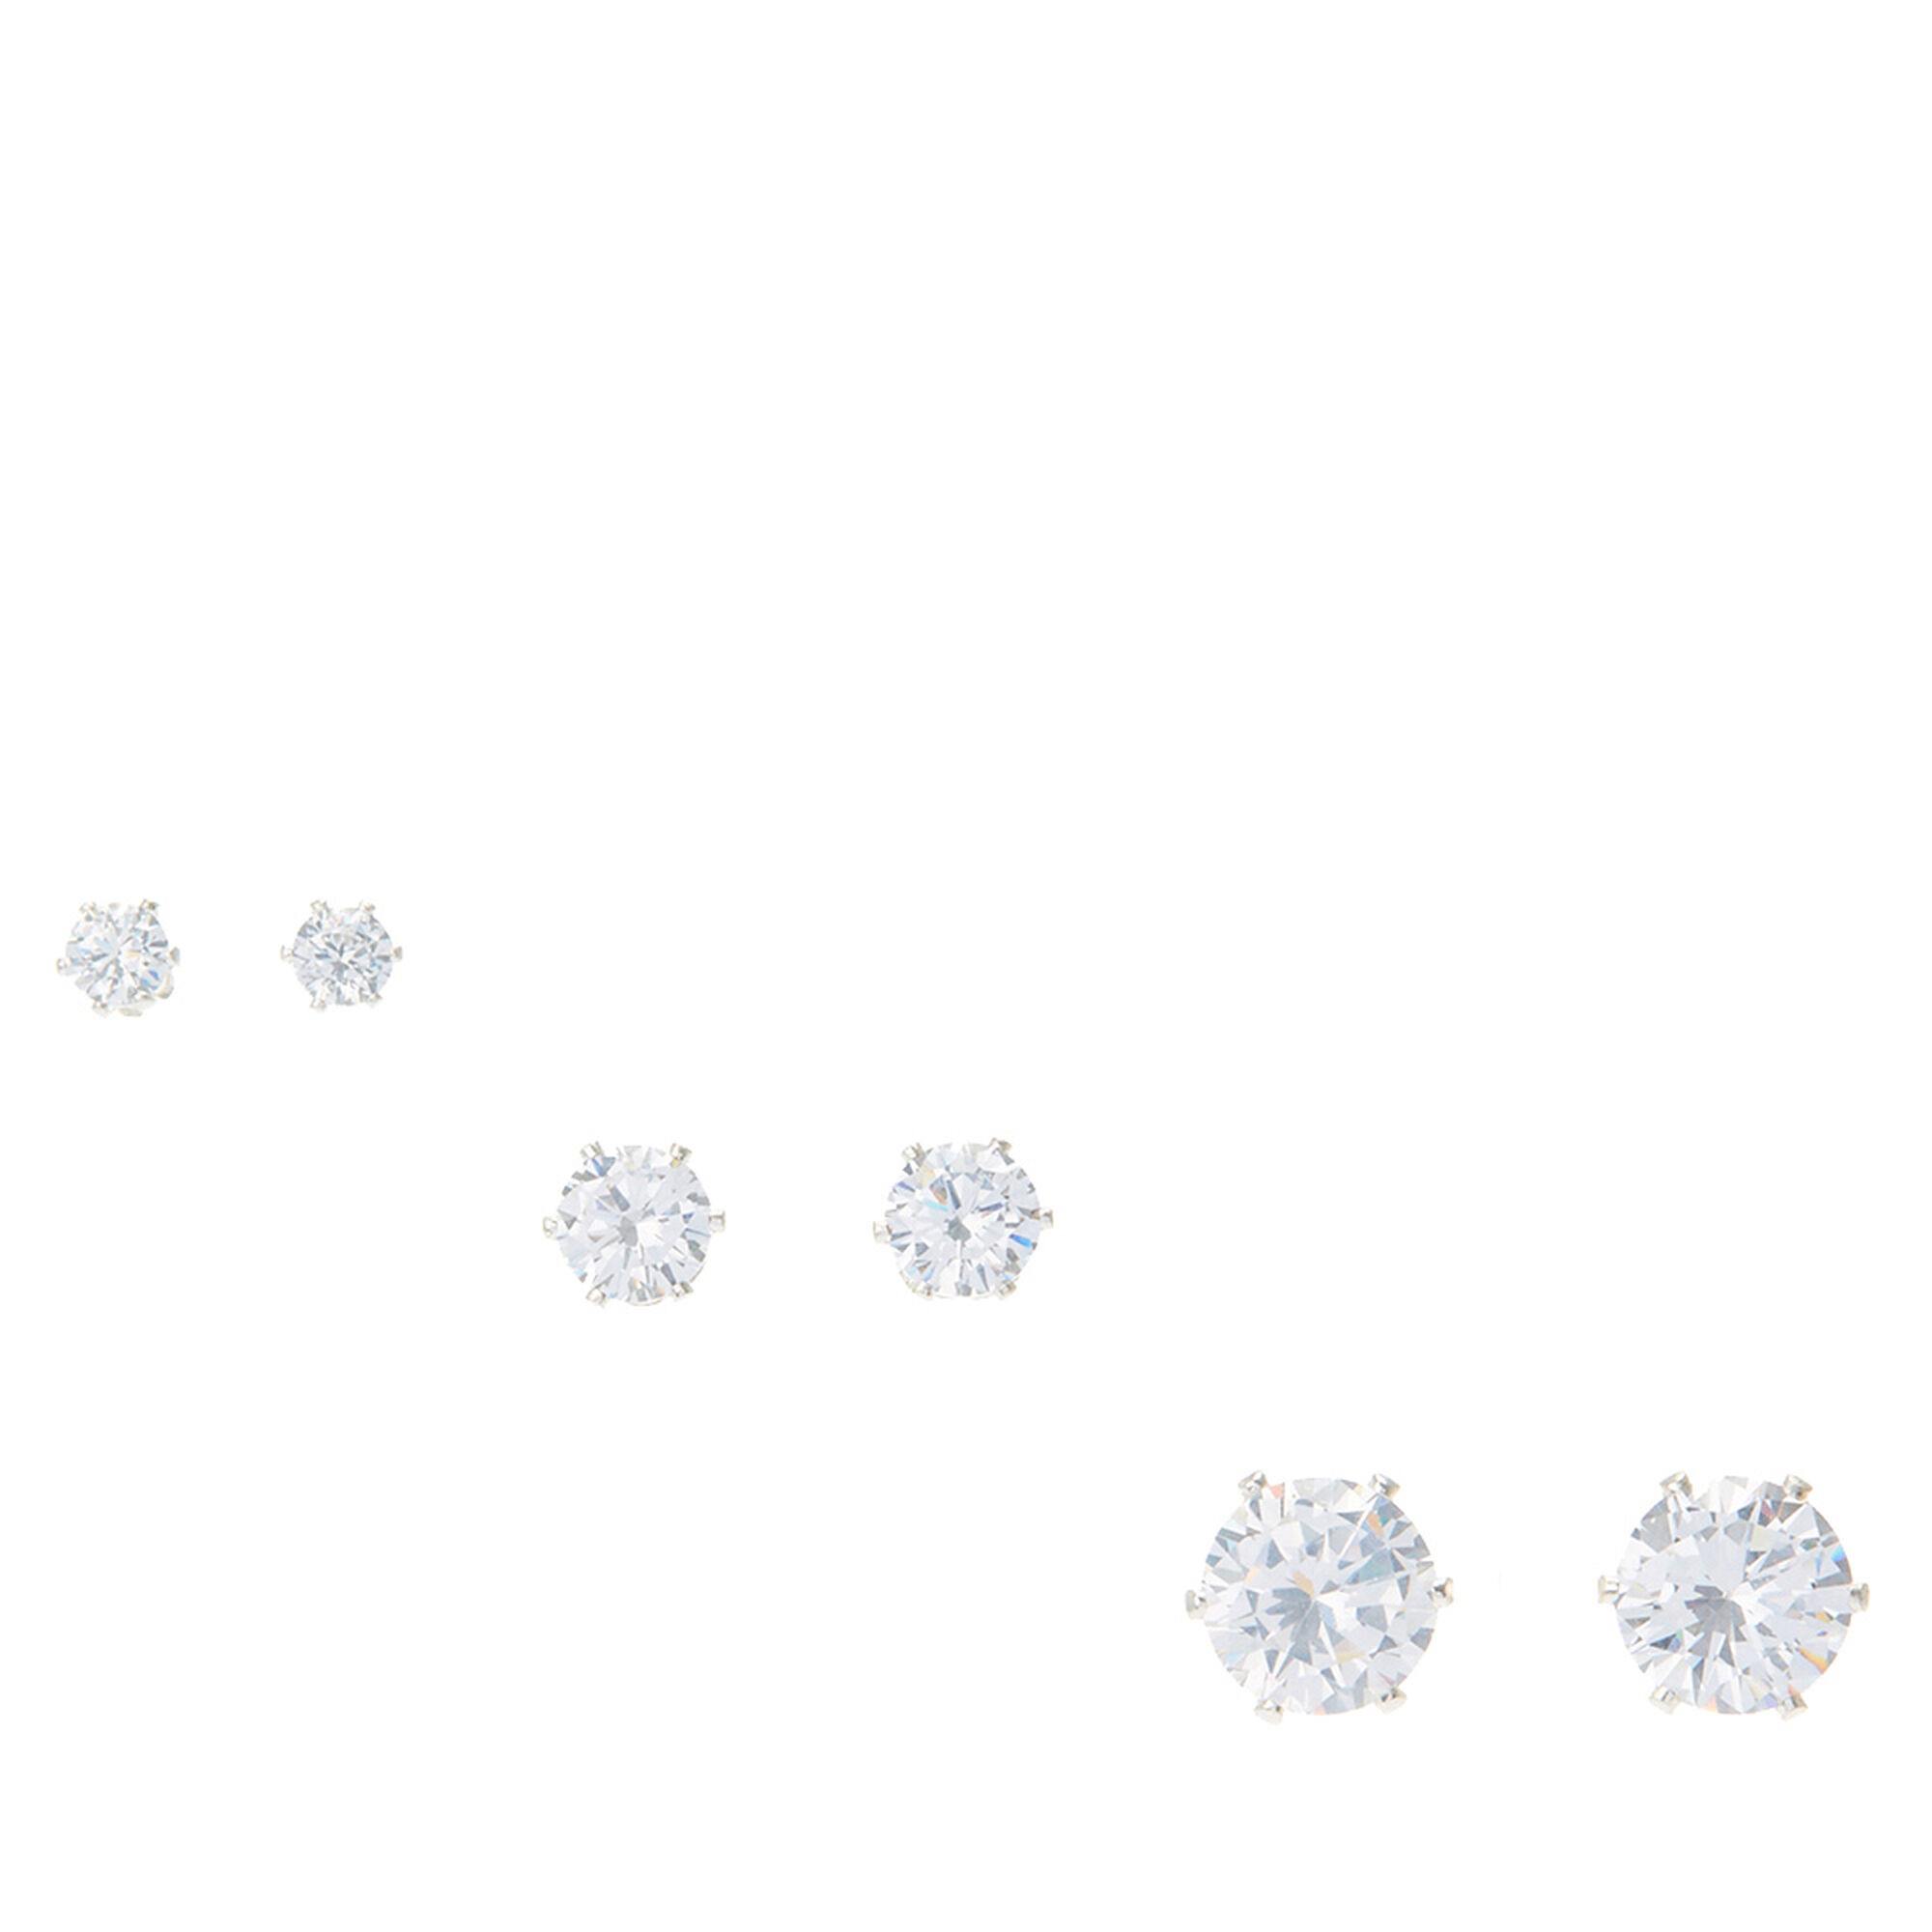 ct earrings unisex jewelry silver cz stud earring sterling bling jgood